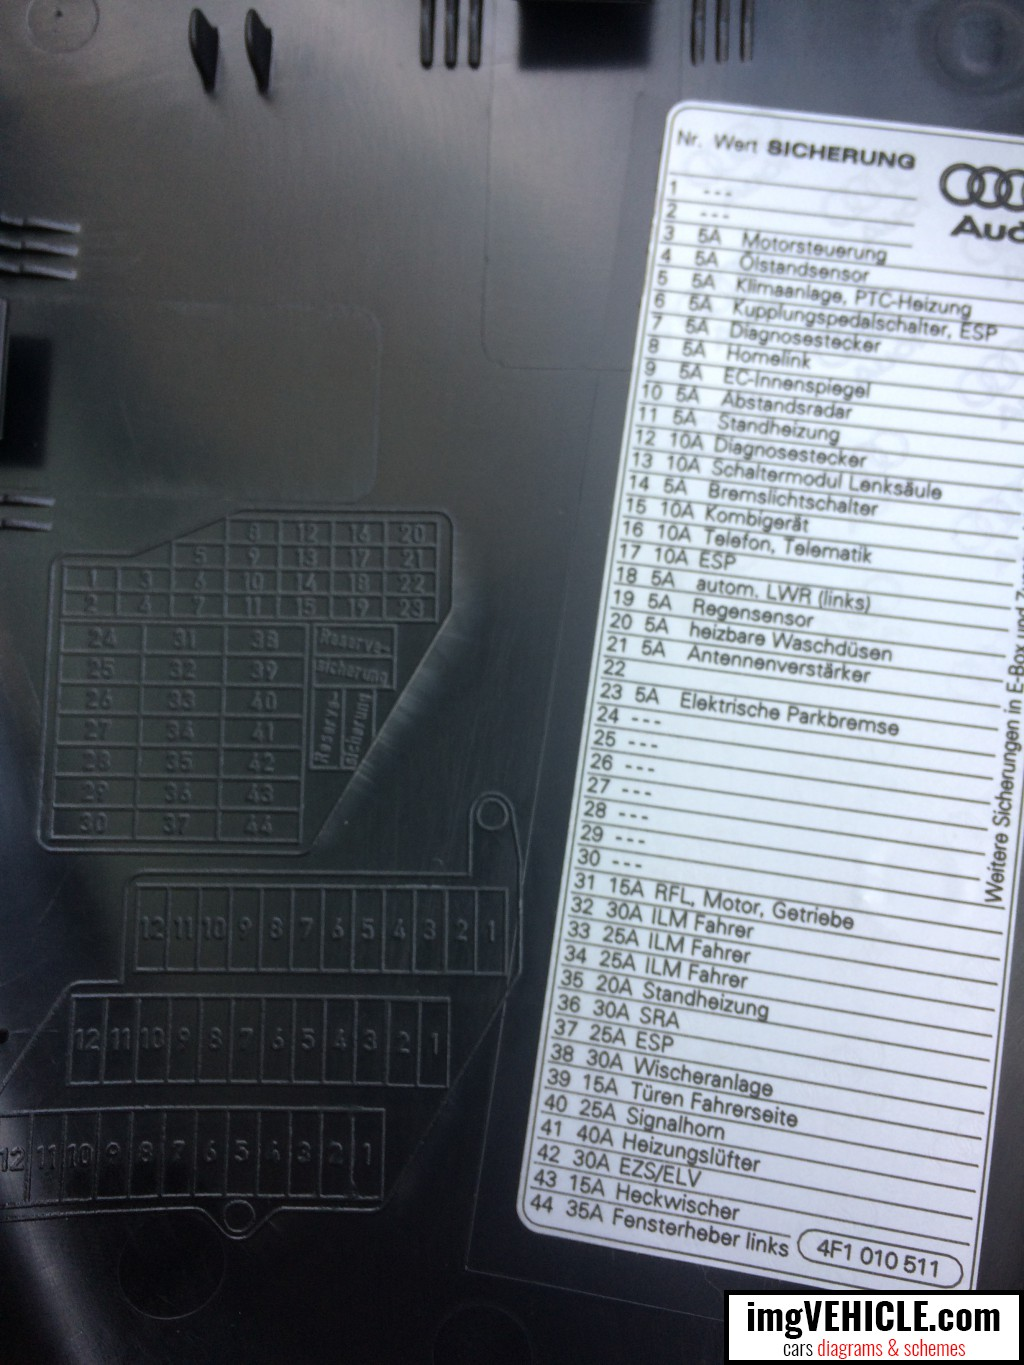 Audi A6 Fuse Diagram Archive Of Automotive Wiring 2009 Cr V Box Manual C6 Diagrams Schemes Imgvehicle Com Rh 2008 C7